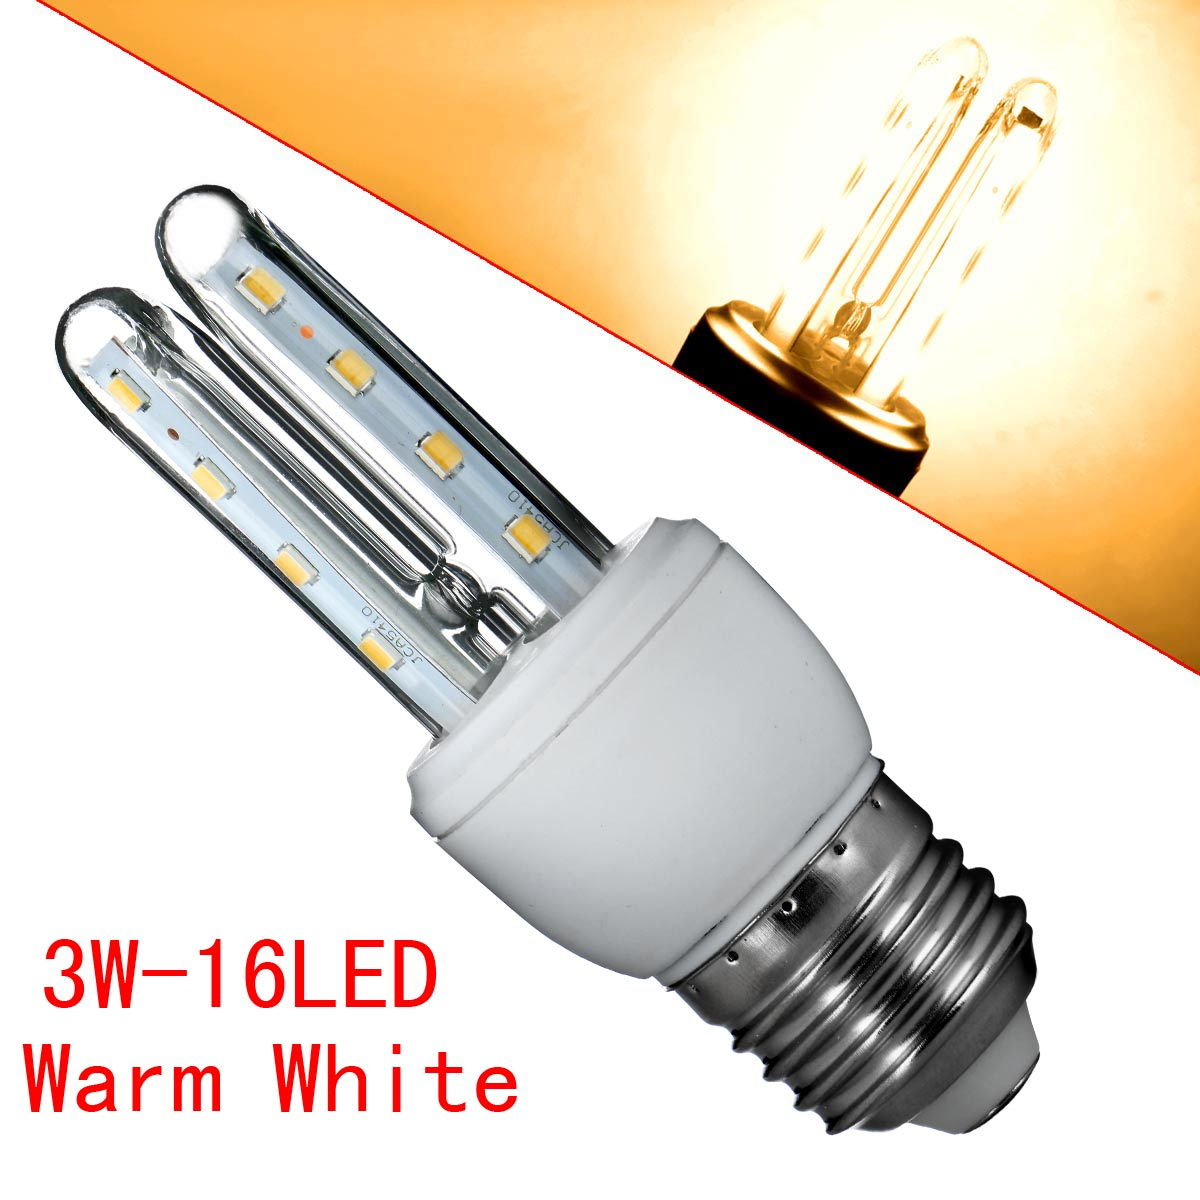 e27 smd 2835 led corn bulb chip u type energy saving lamp bright warm cool white ebay. Black Bedroom Furniture Sets. Home Design Ideas